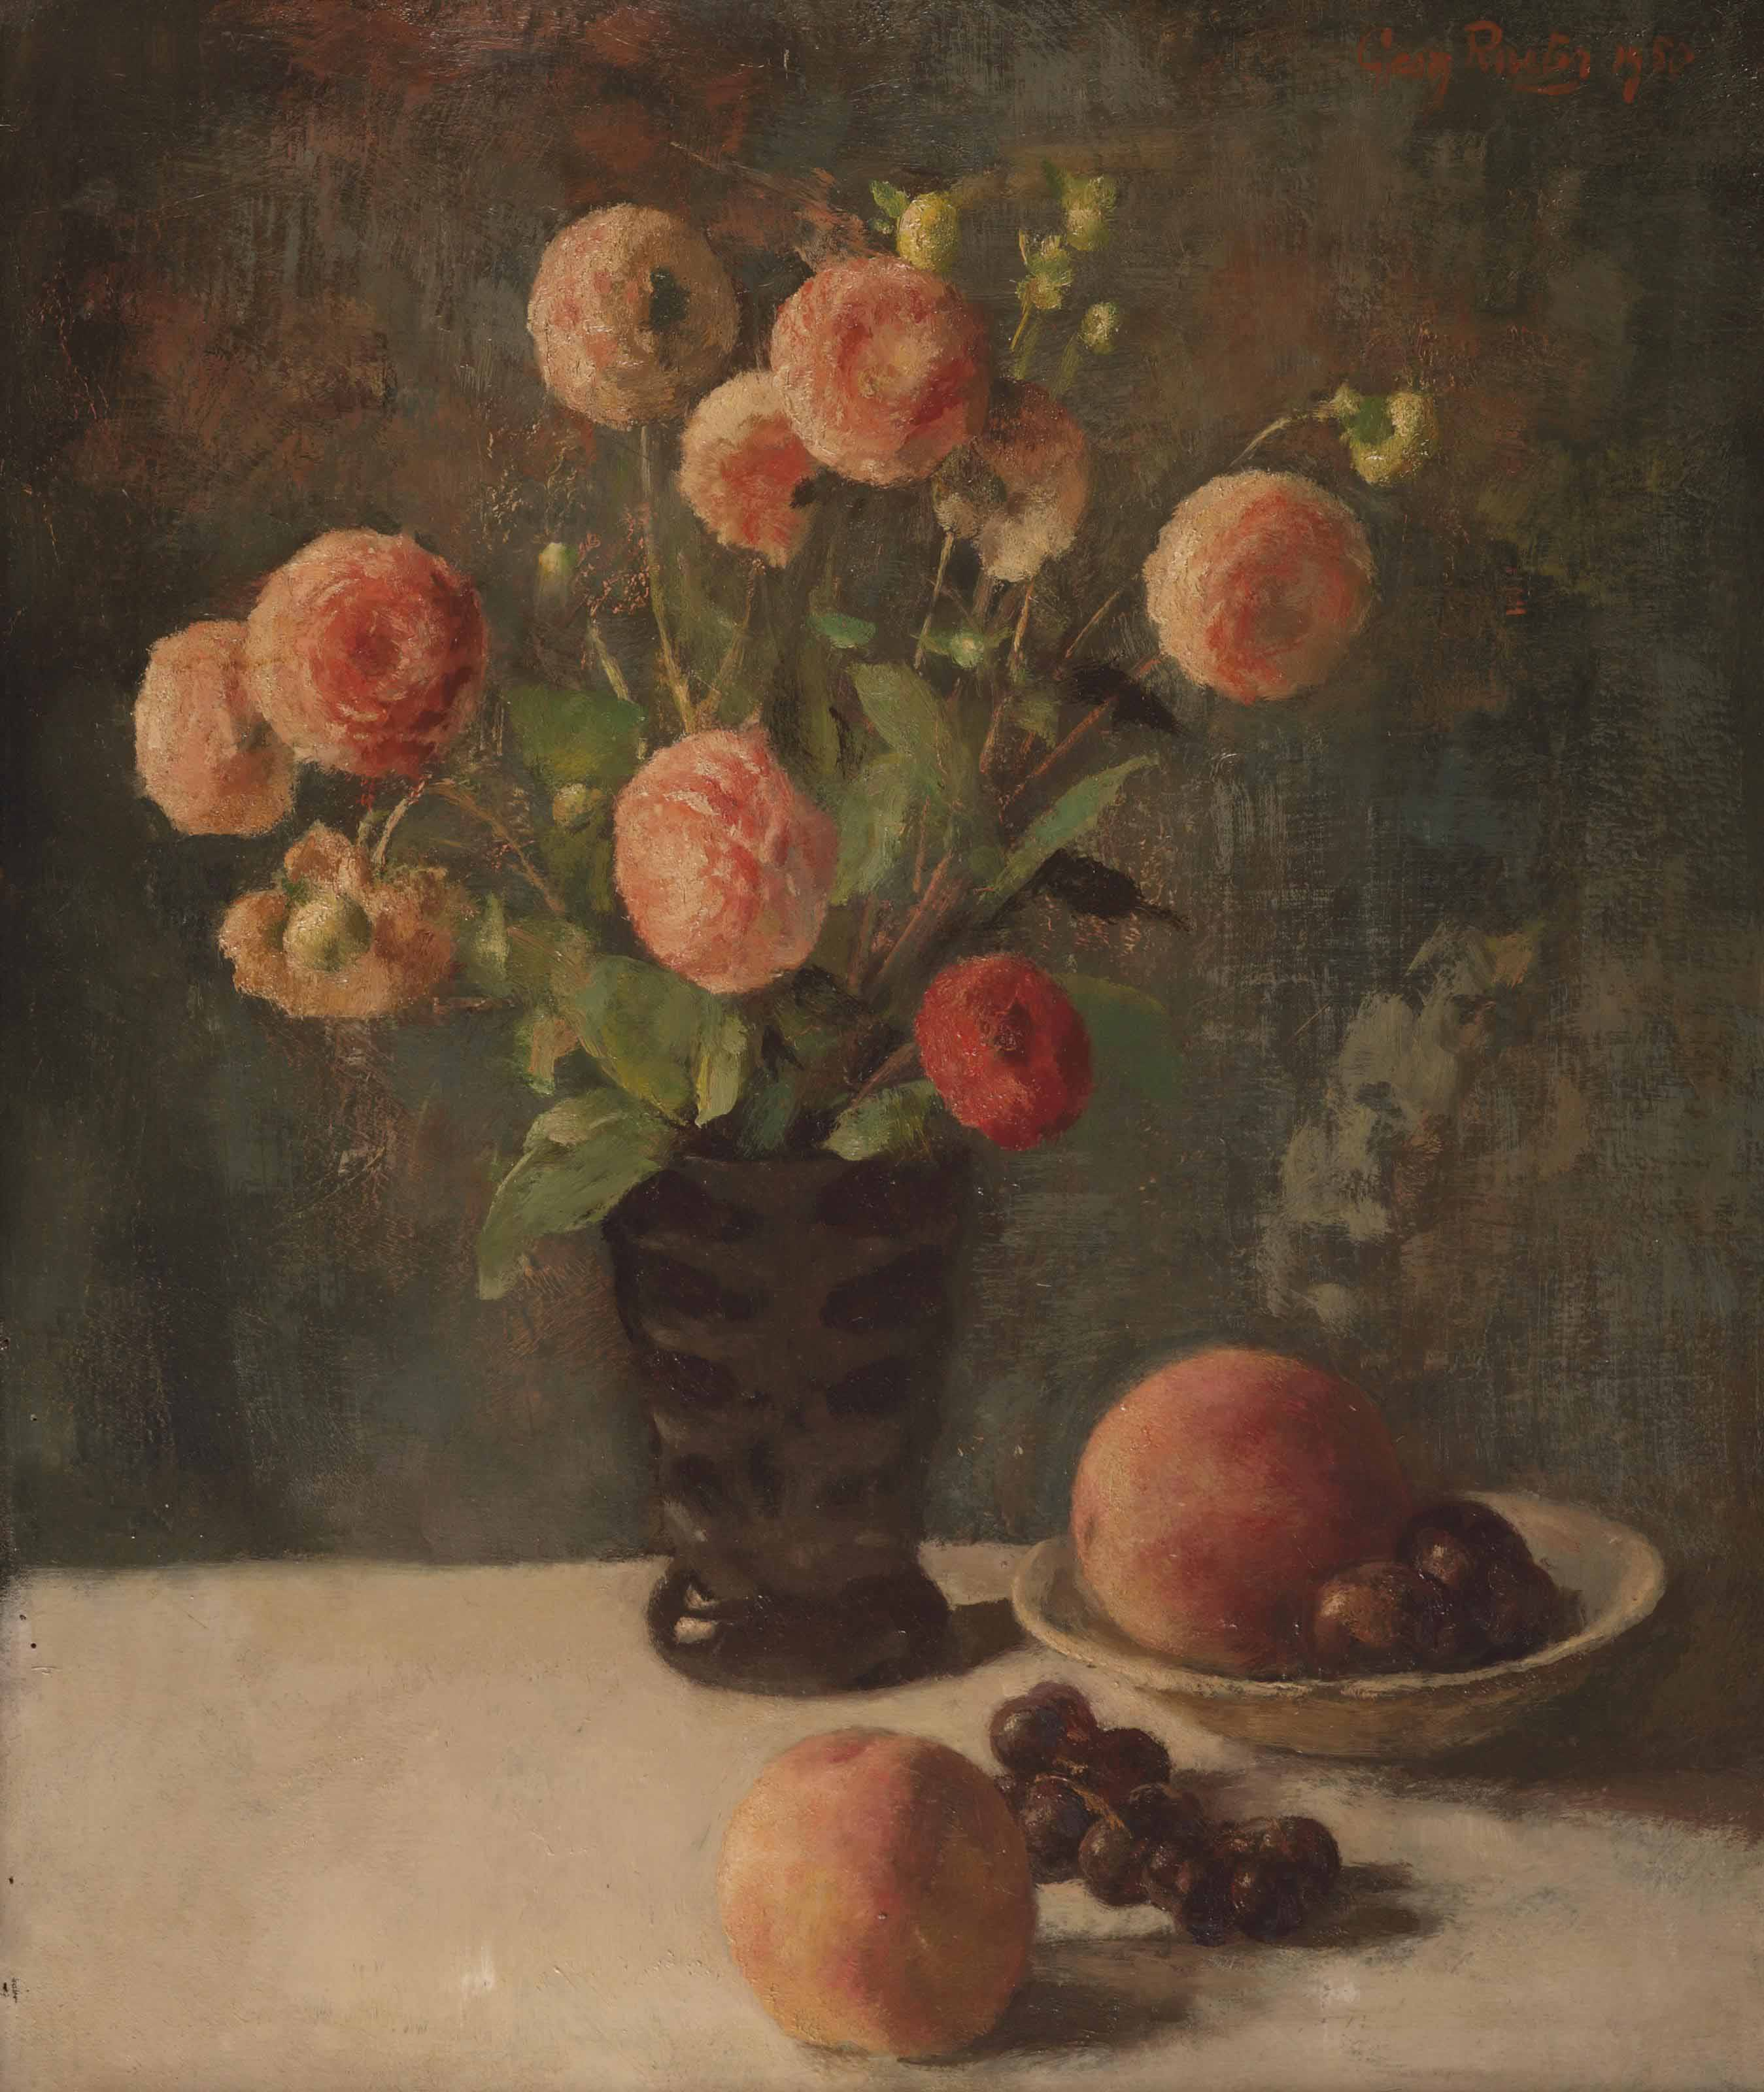 A still life with flowers and fruits